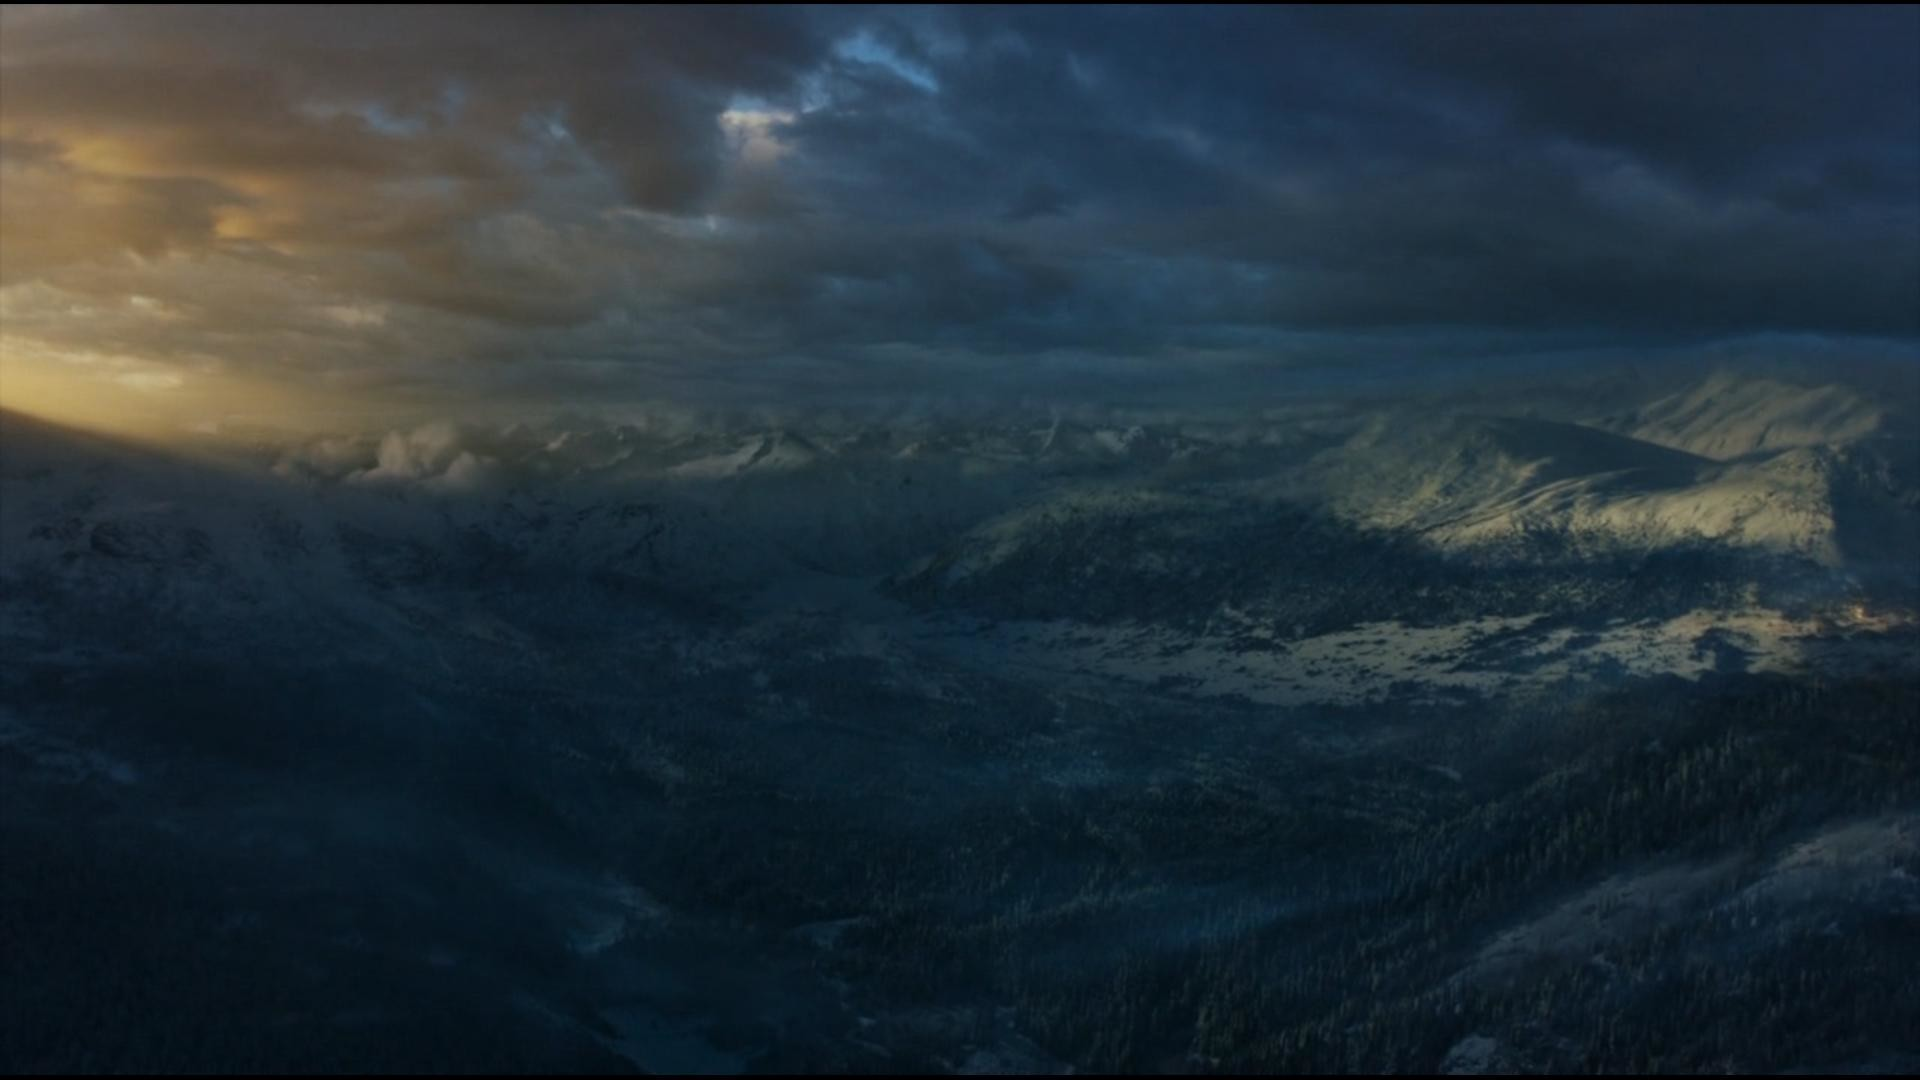 Looking North over the Wall from Game of Thrones Season 3, Episode 6 .